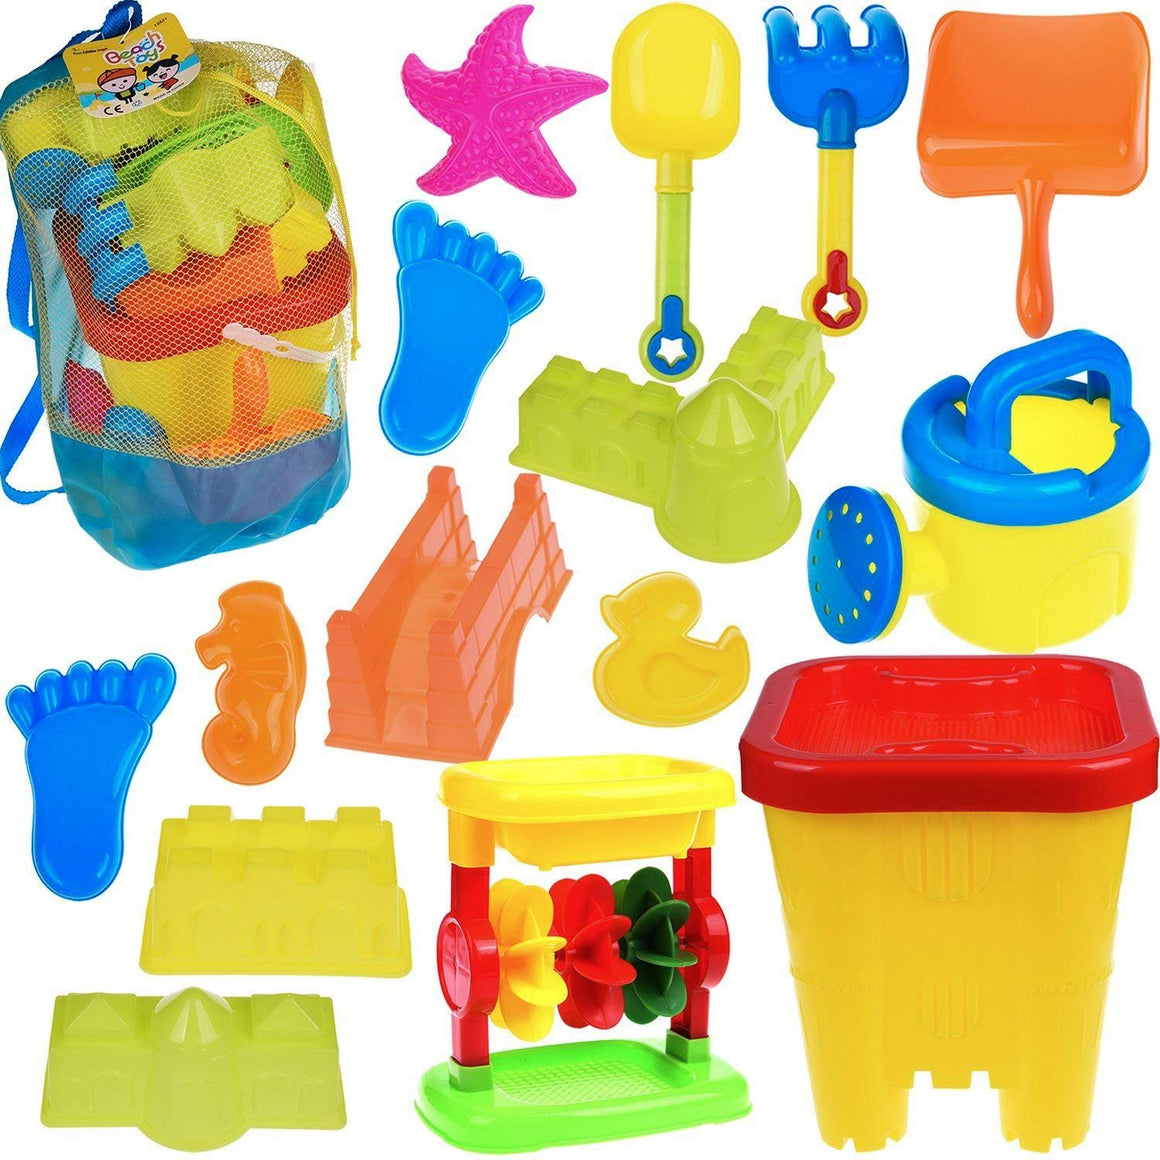 16 PCs Beach Sand Toys Set for Kids Toddlers, Sandbox Toy with Mesh Bag, Beach Bucket, Sand Wheel, Beach Molds and Beach Shovel Tool Kit